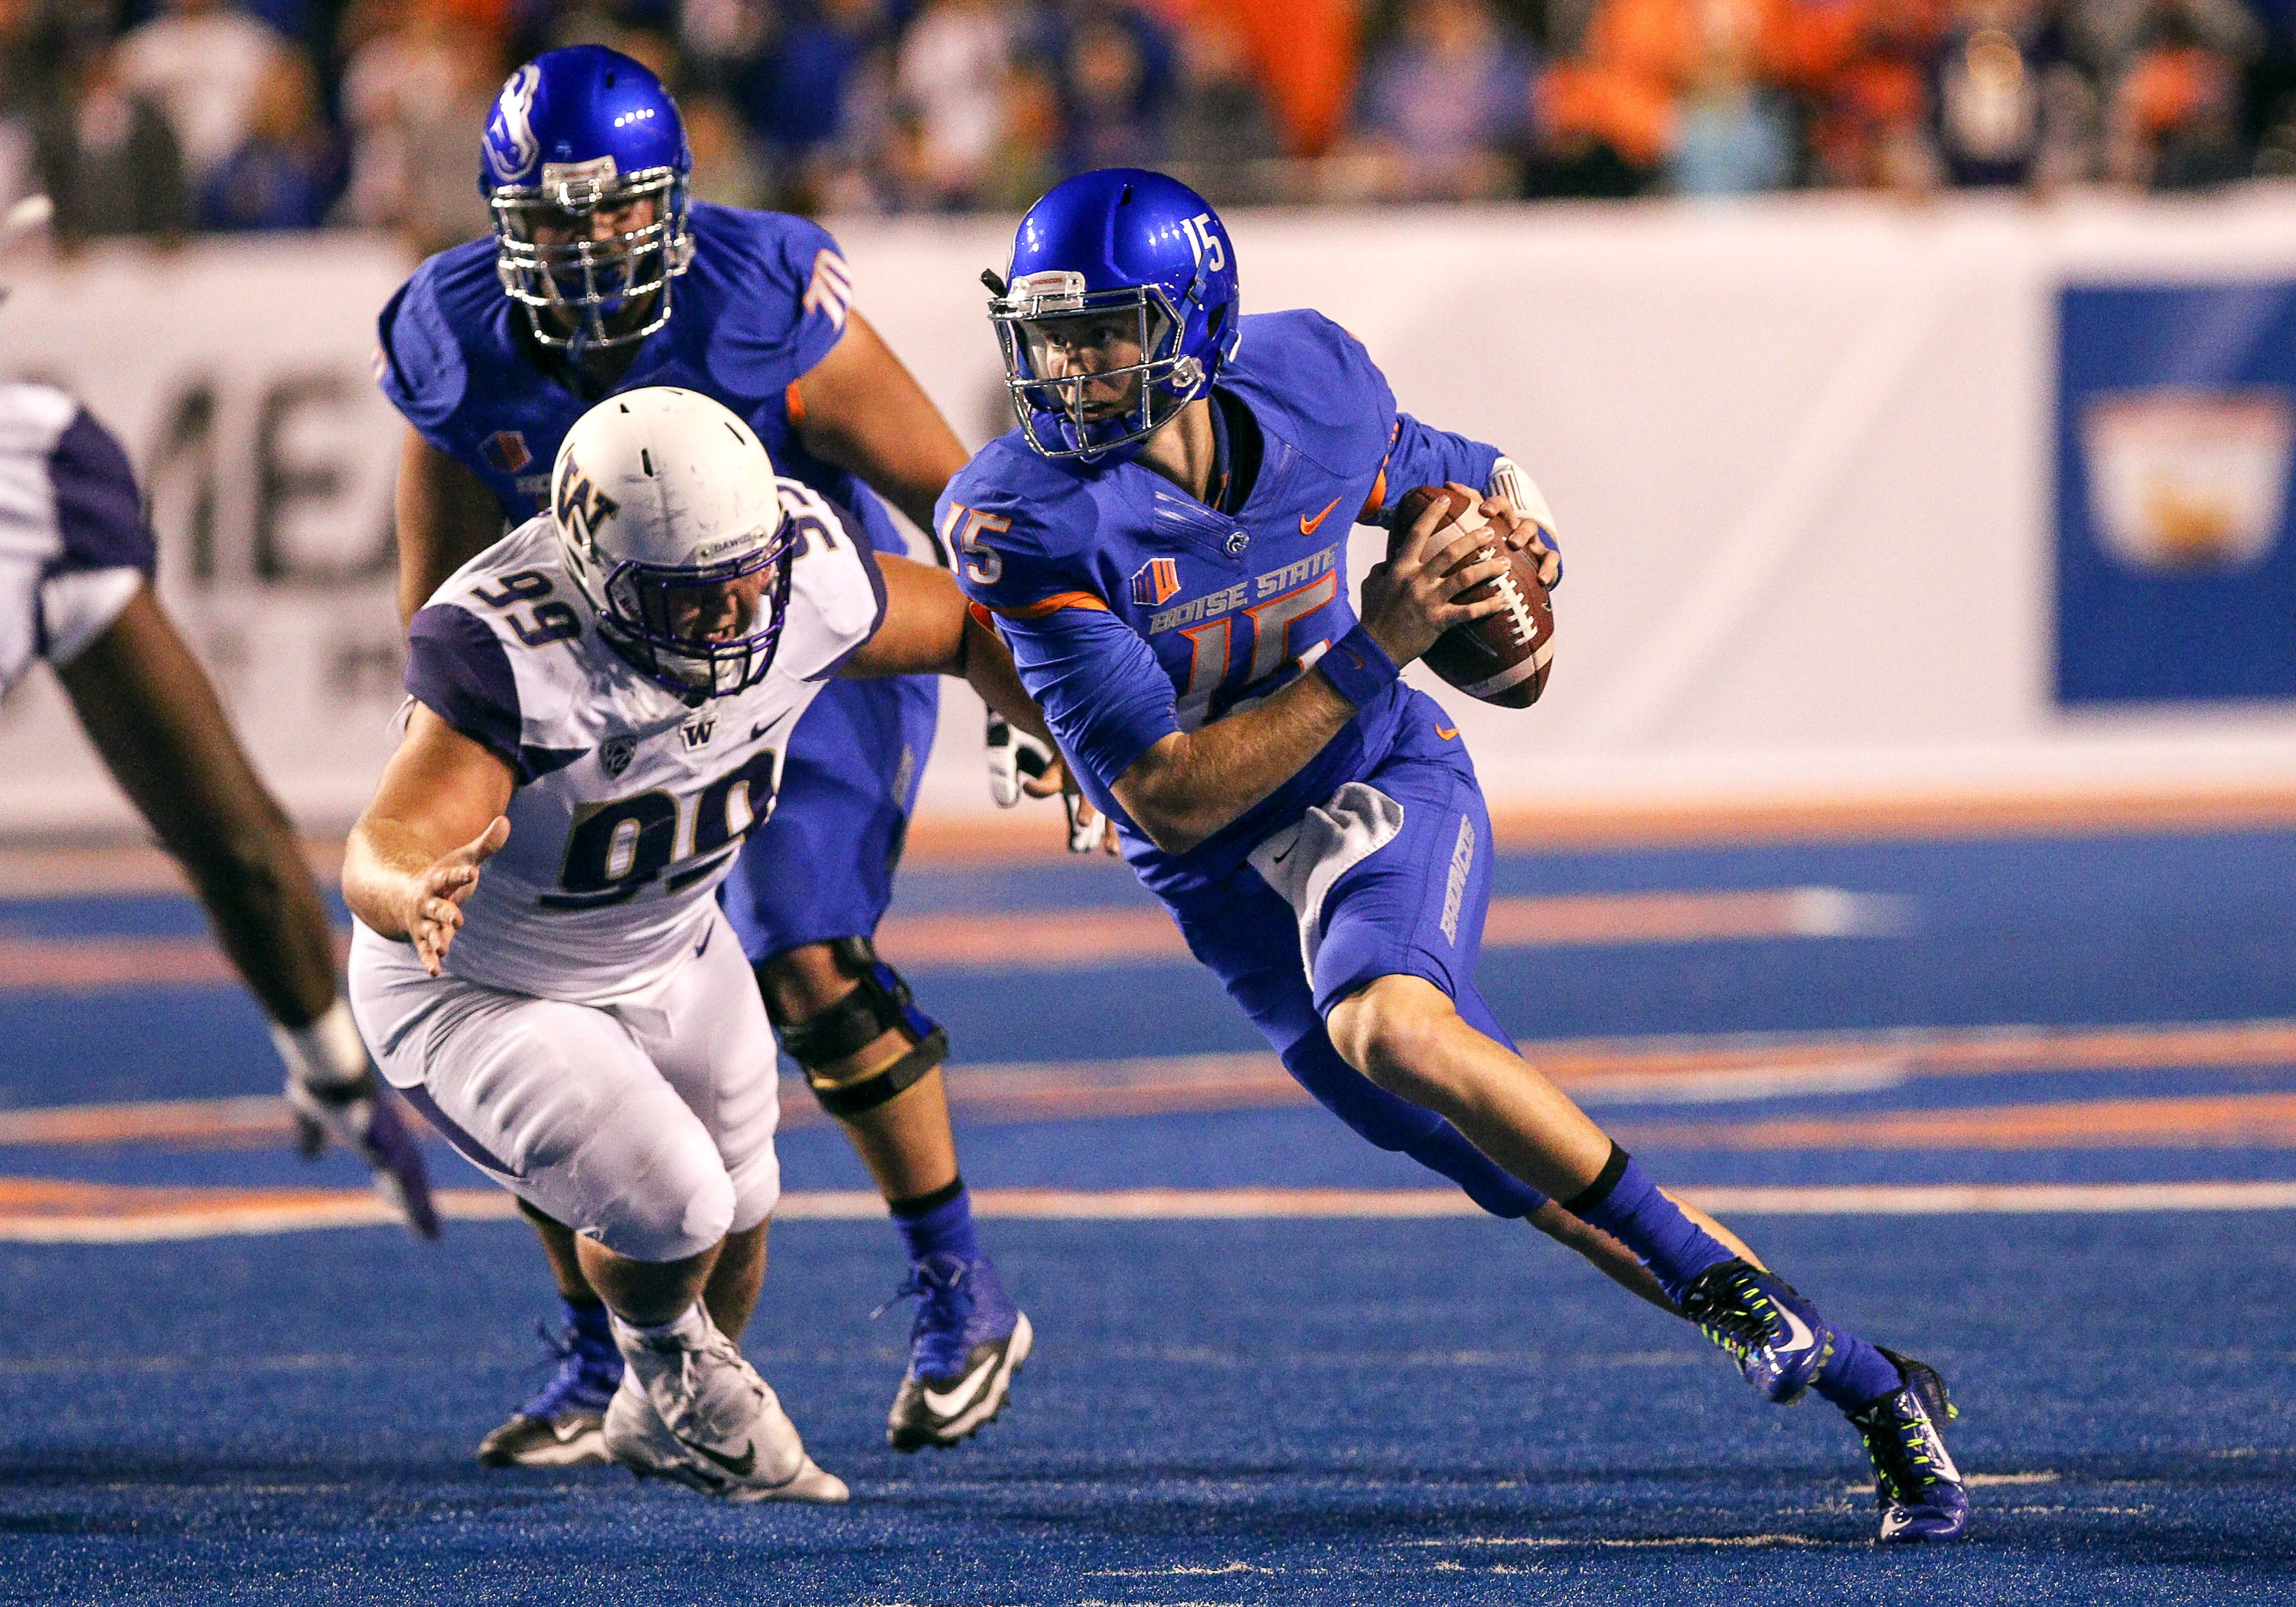 Visit ESPN to view the Boise State Broncos team schedule for the current and previous seasons